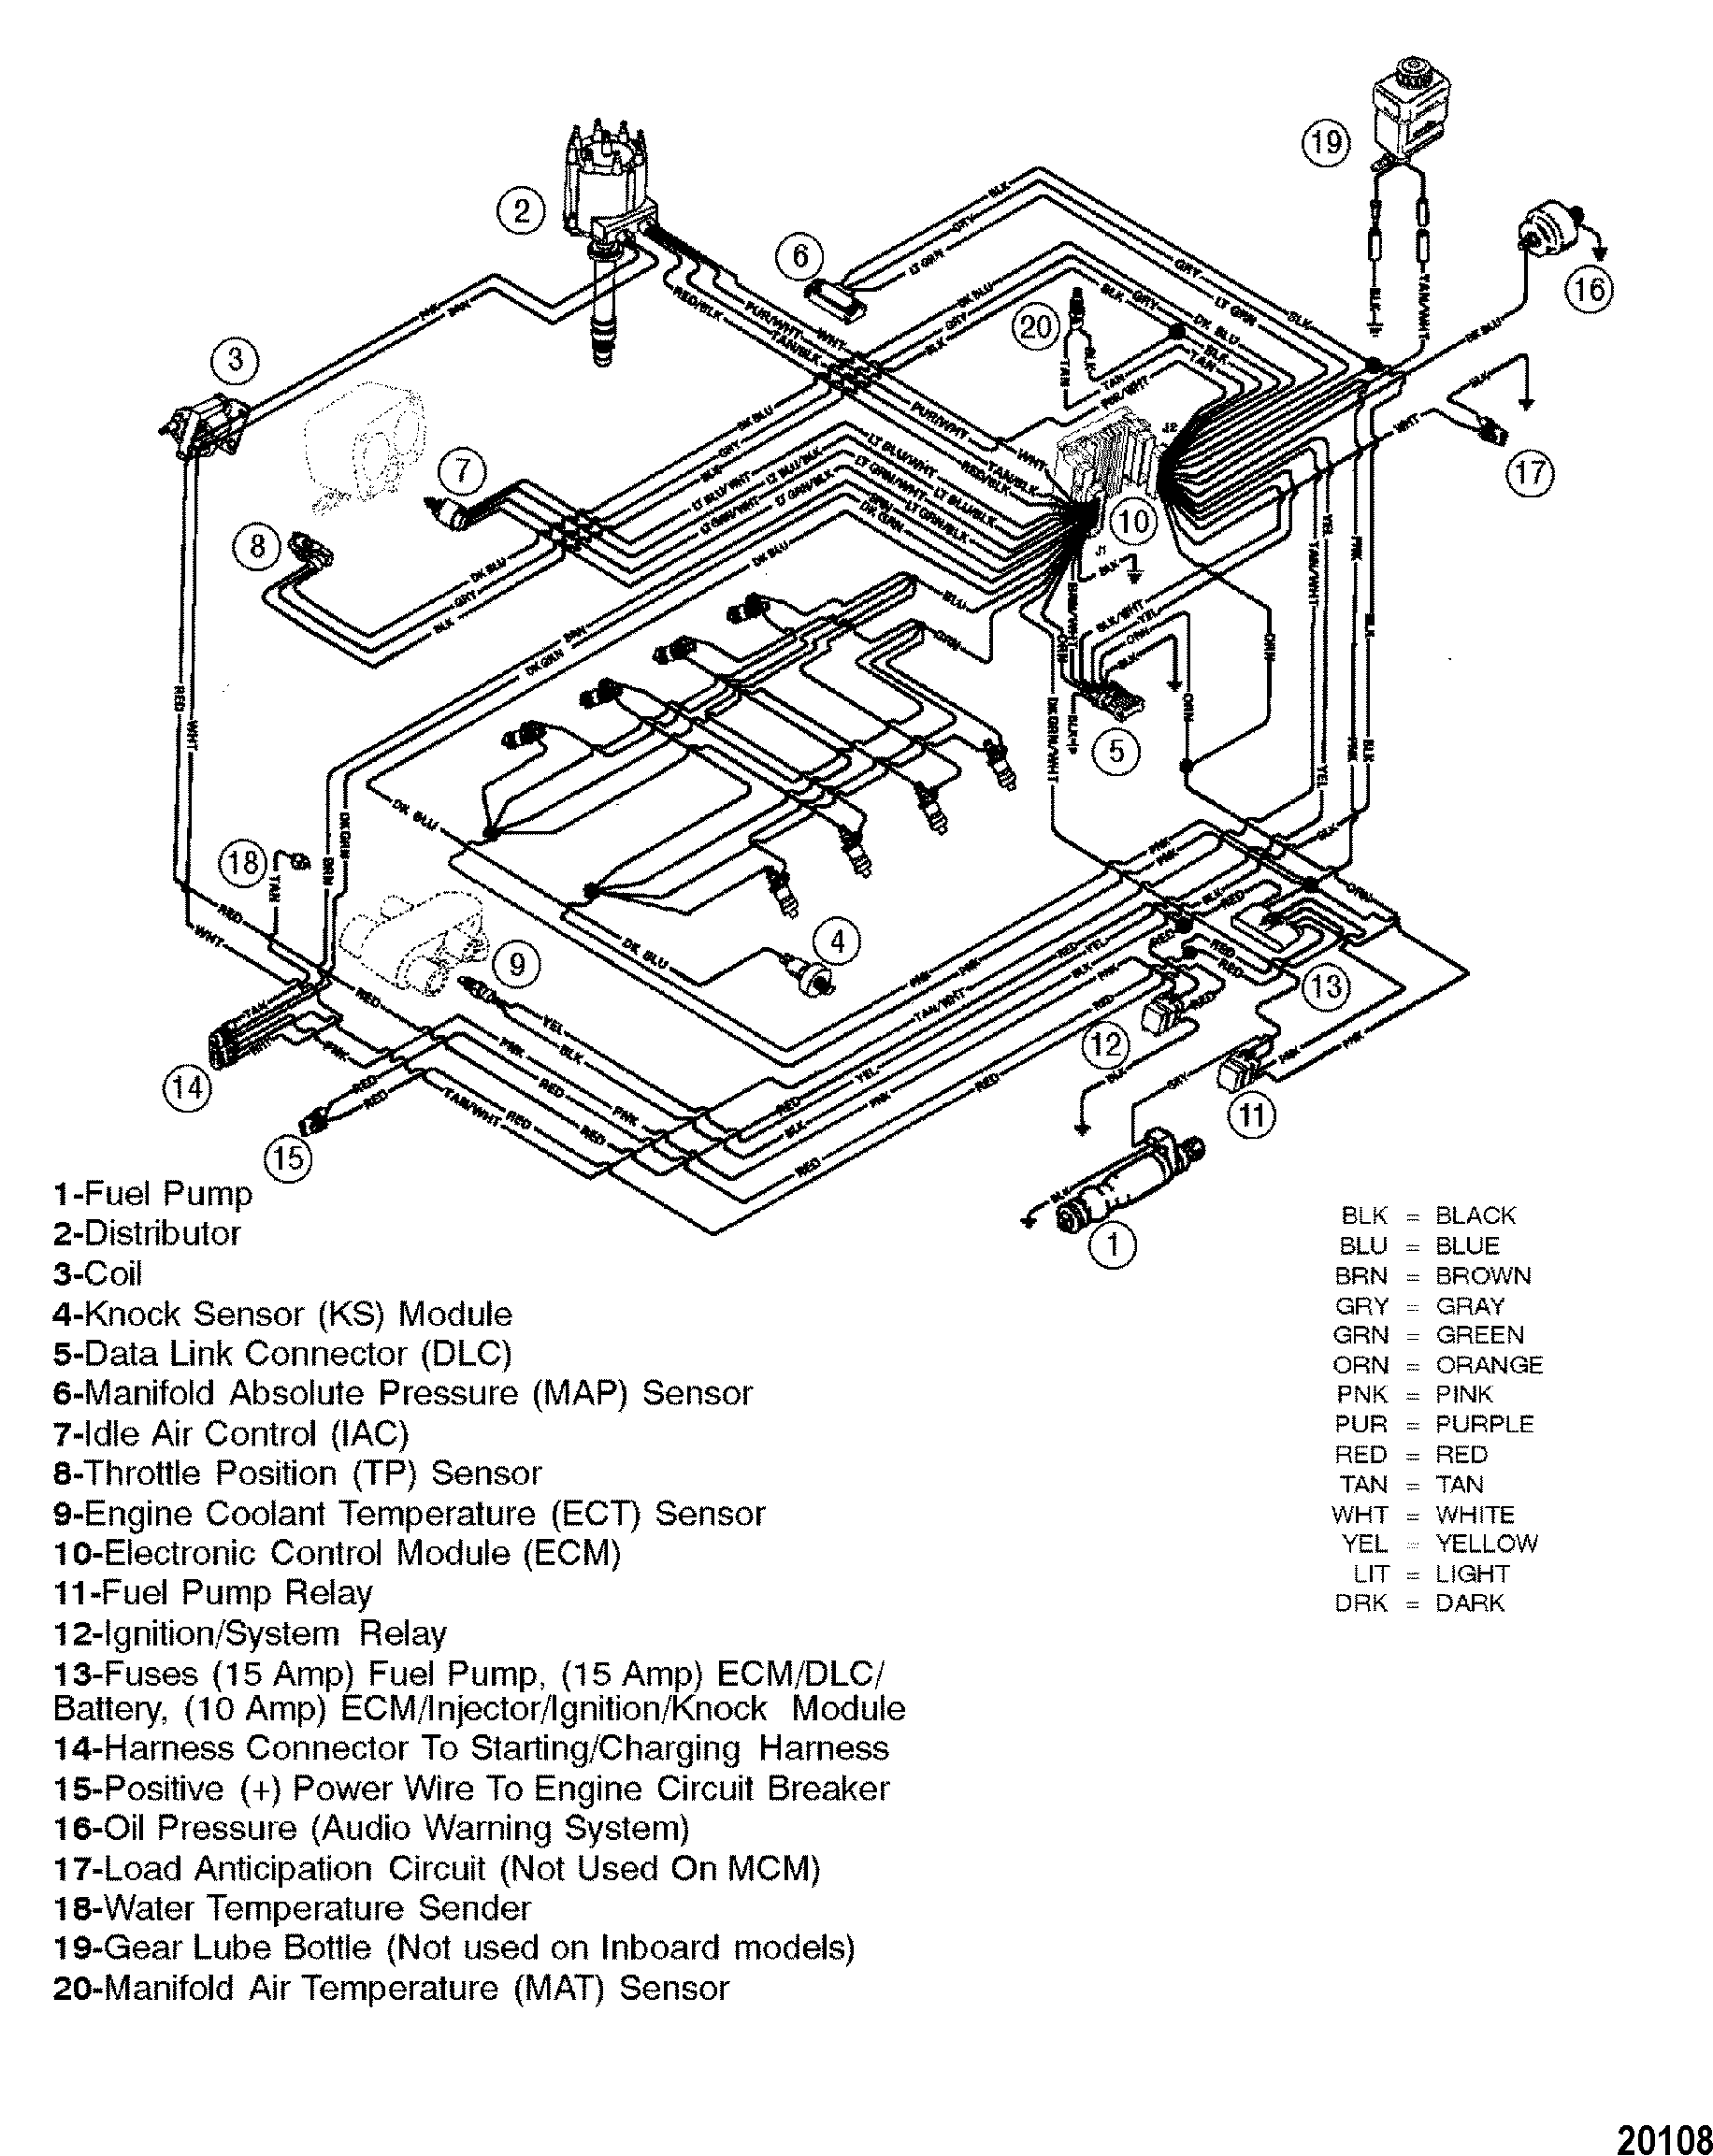 Mercruiser 5 7 Diagram